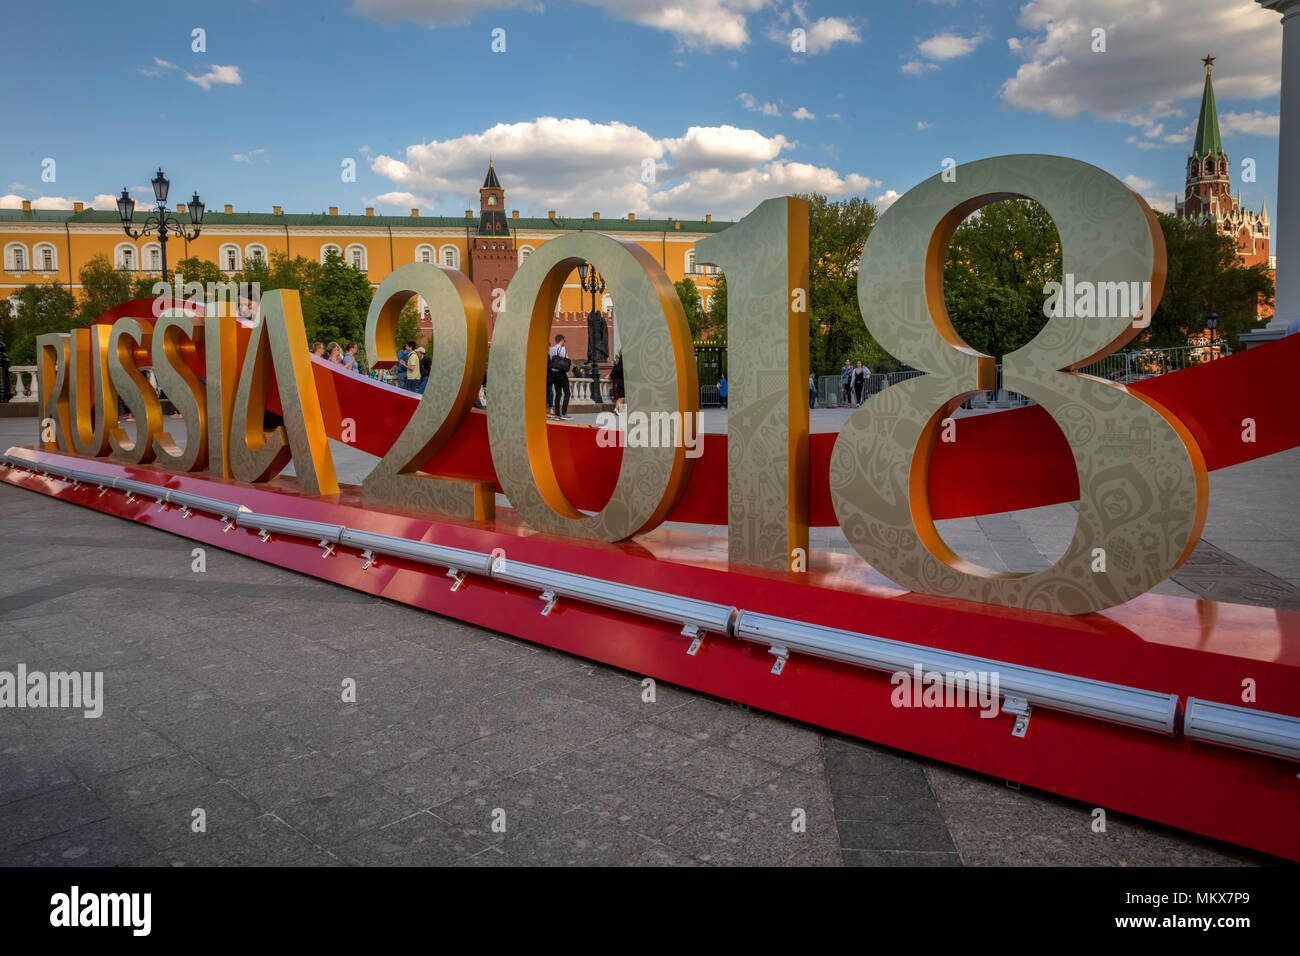 The inscription 'Russia 2018' installed before start of FIFA World Cup on the Manege Square in Moscow, Russia - Stock Image